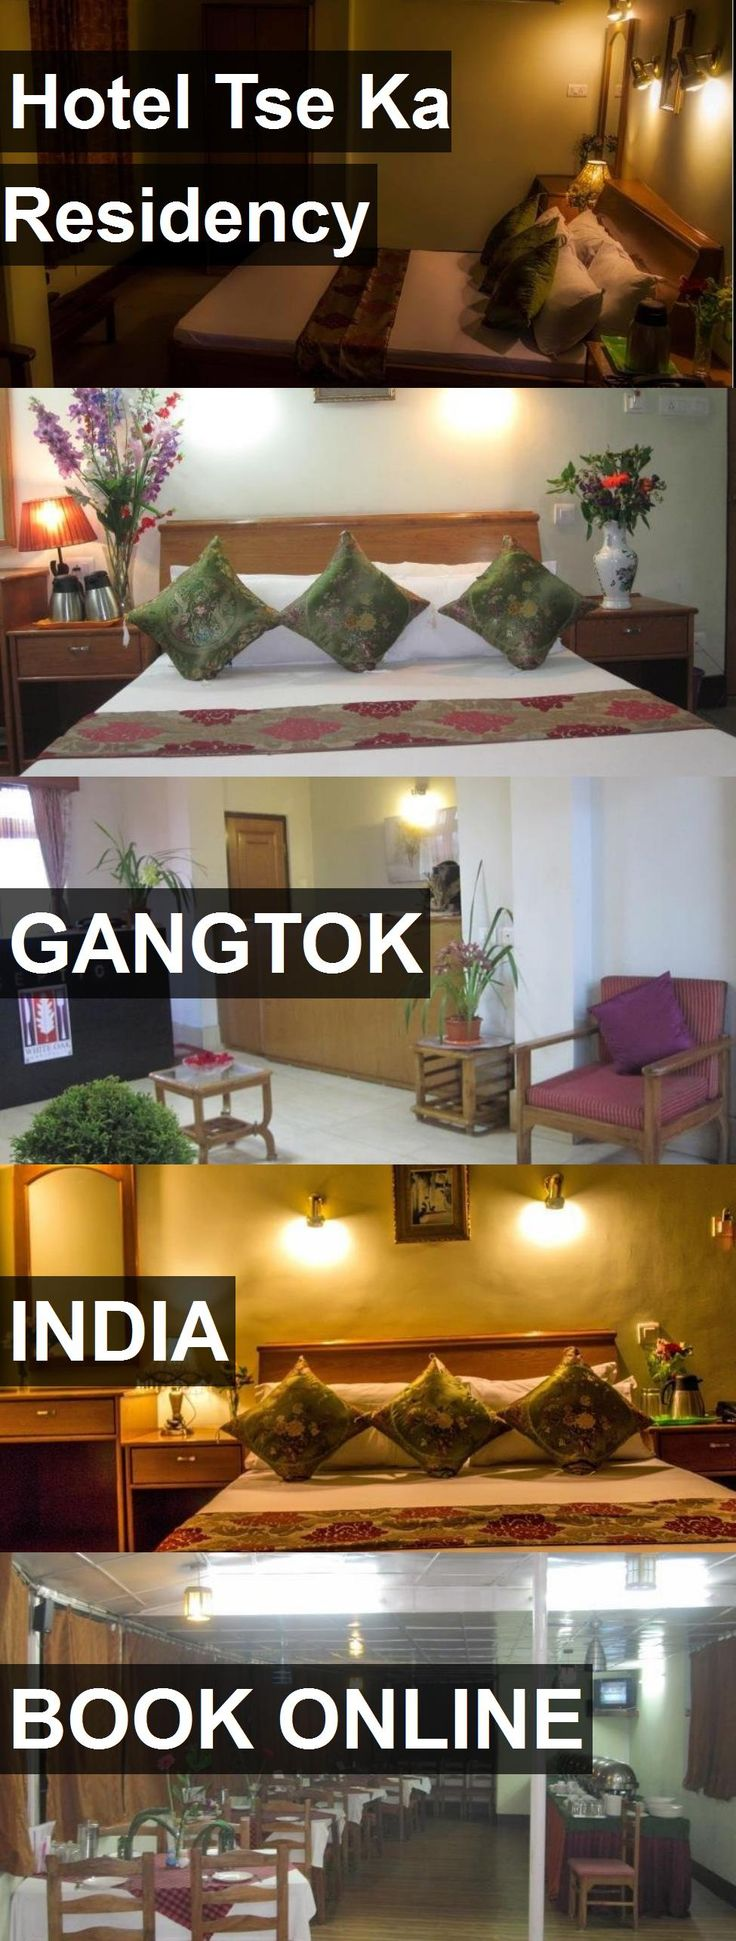 Hotel Tse Ka Residency in Gangtok, India. For more information, photos, reviews and best prices please follow the link. #India #Gangtok #travel #vacation #hotel